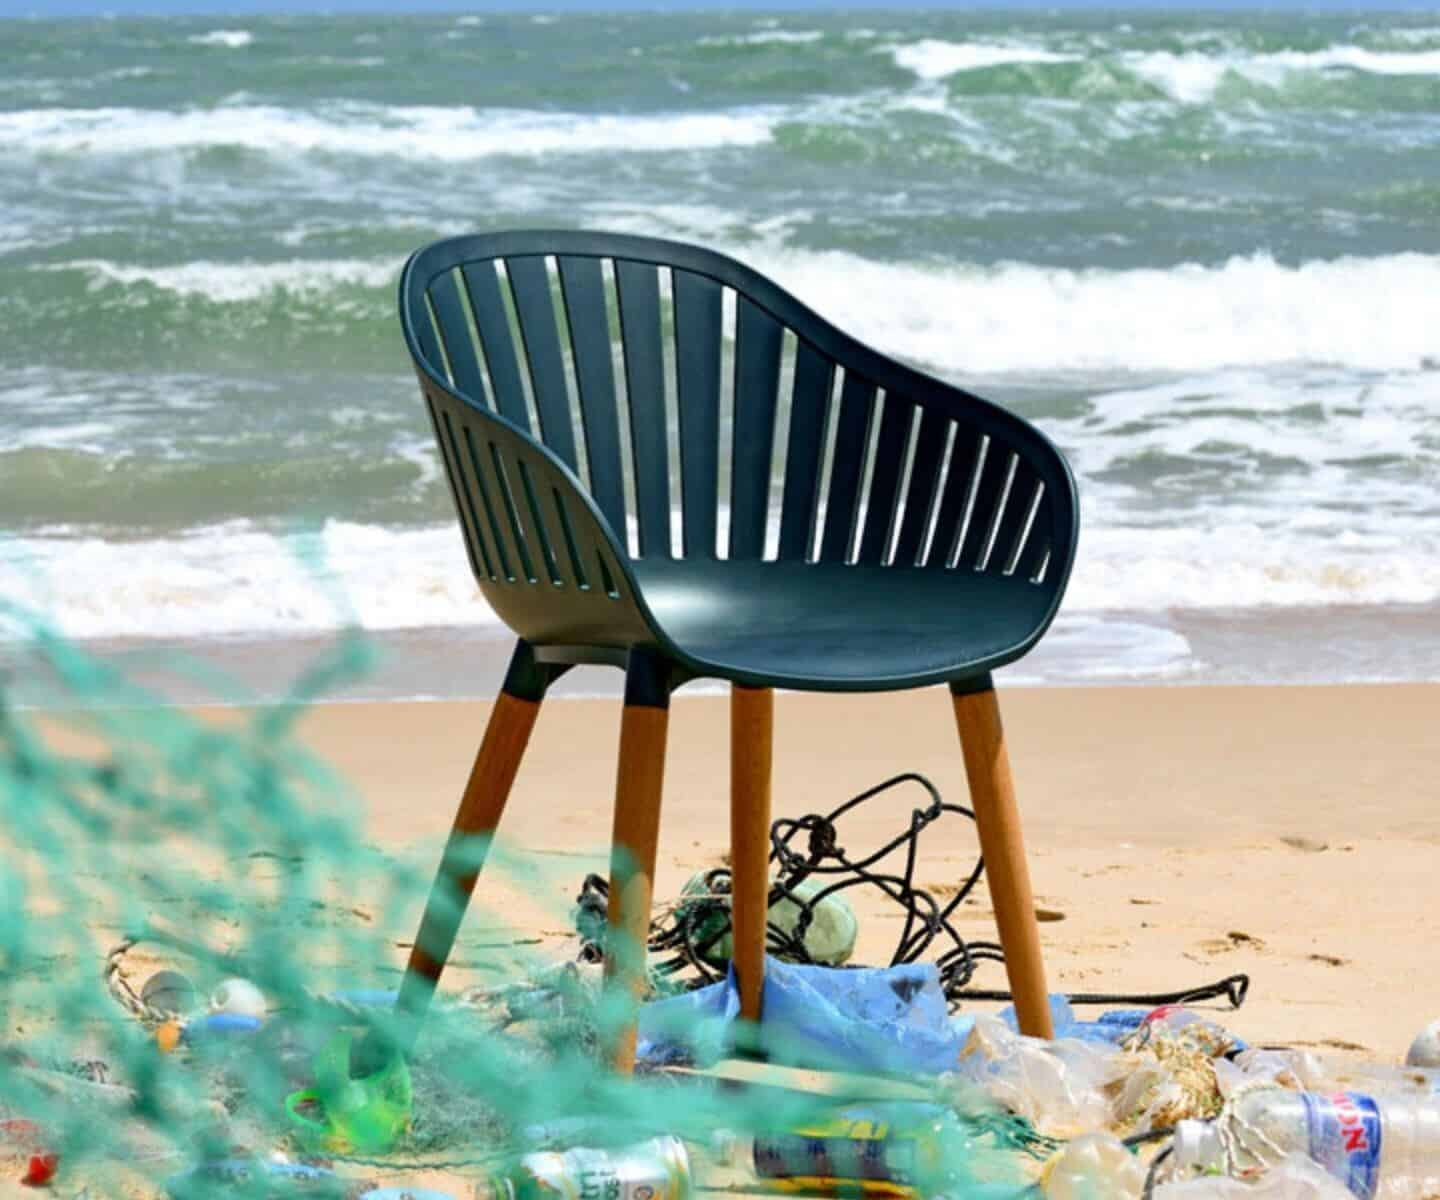 DuraOcean award-winning outdoor chair from LifestyleGarden is made from nets, ropes and plastic waste recovered from the world's oceans. Perfect for sustainable interior design